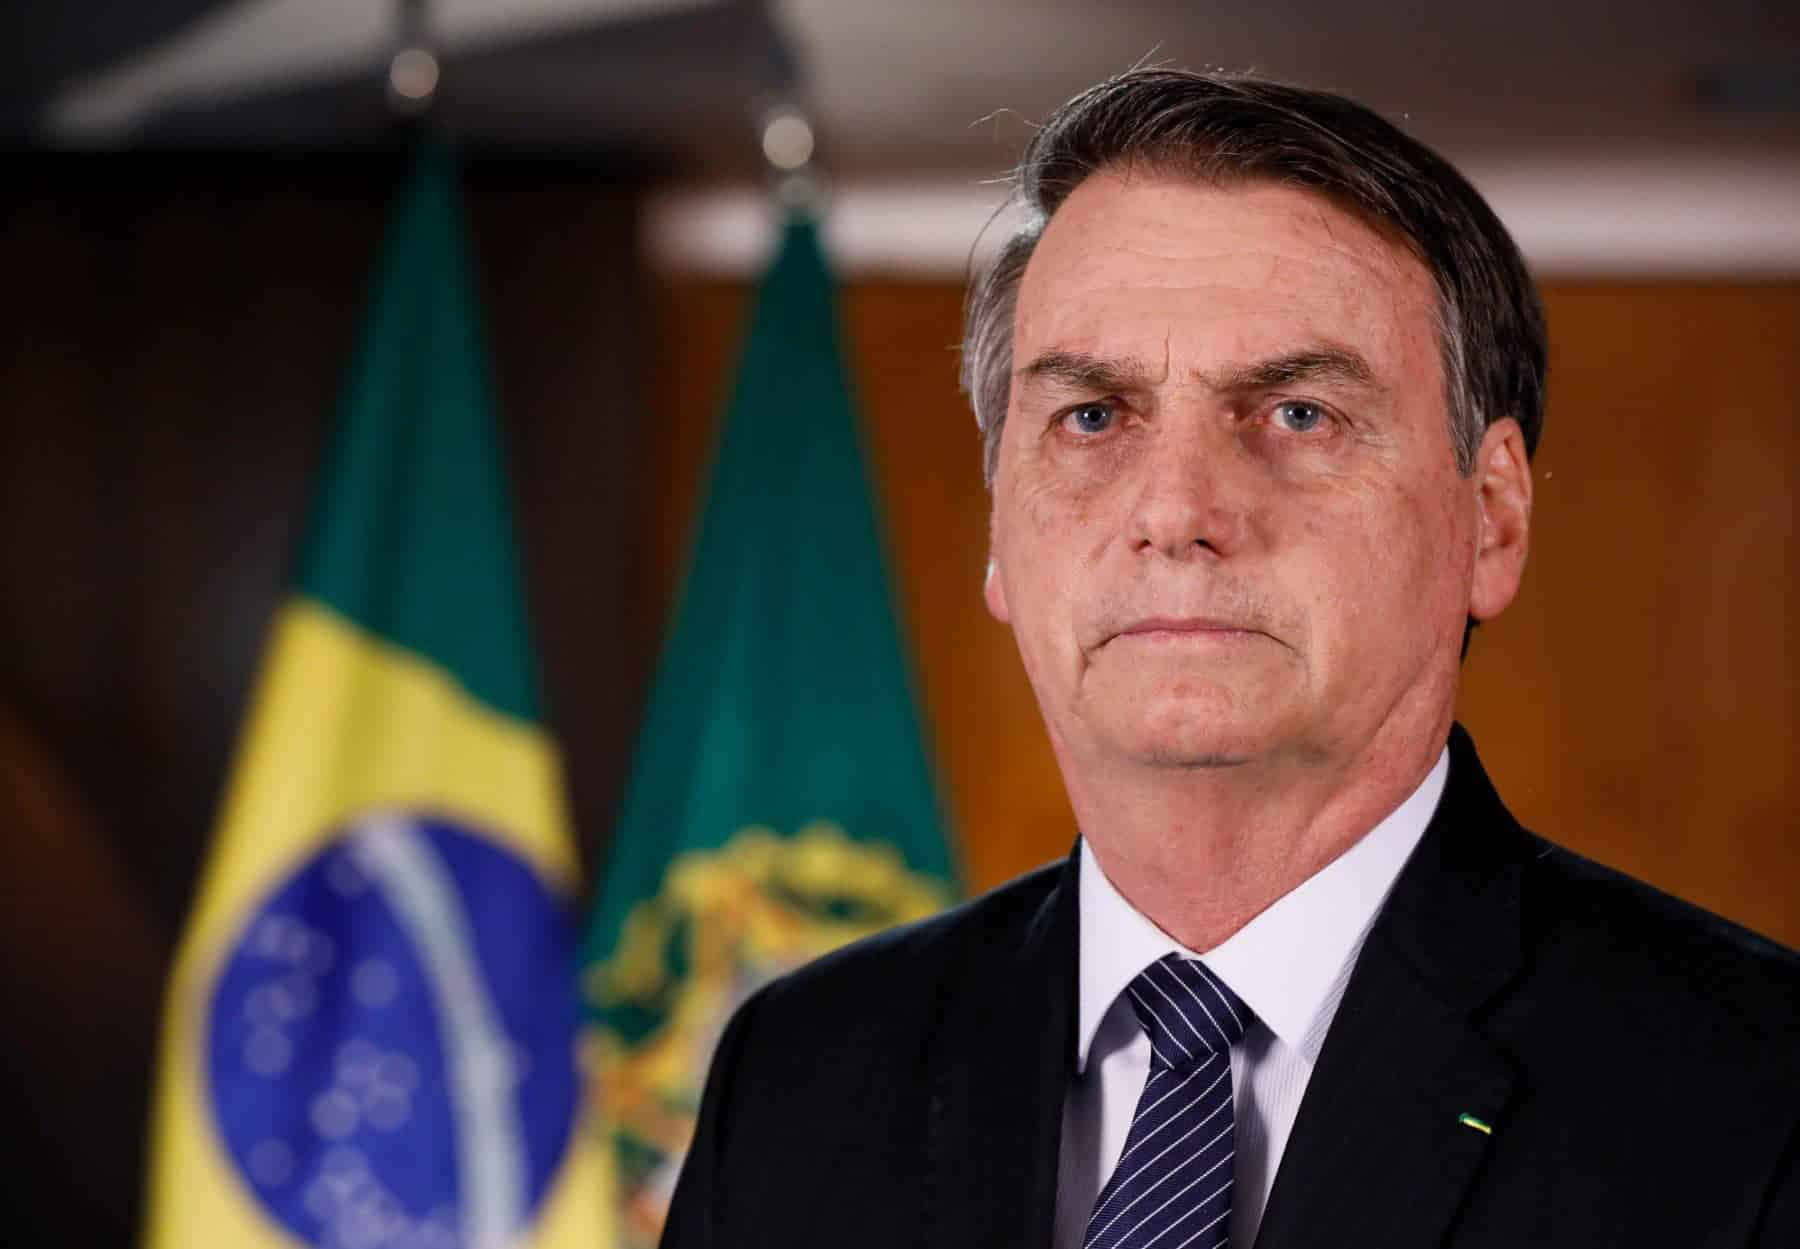 Photo of Brazilian President Favors Legalizing Casinos, Wants States to Impose Regulations